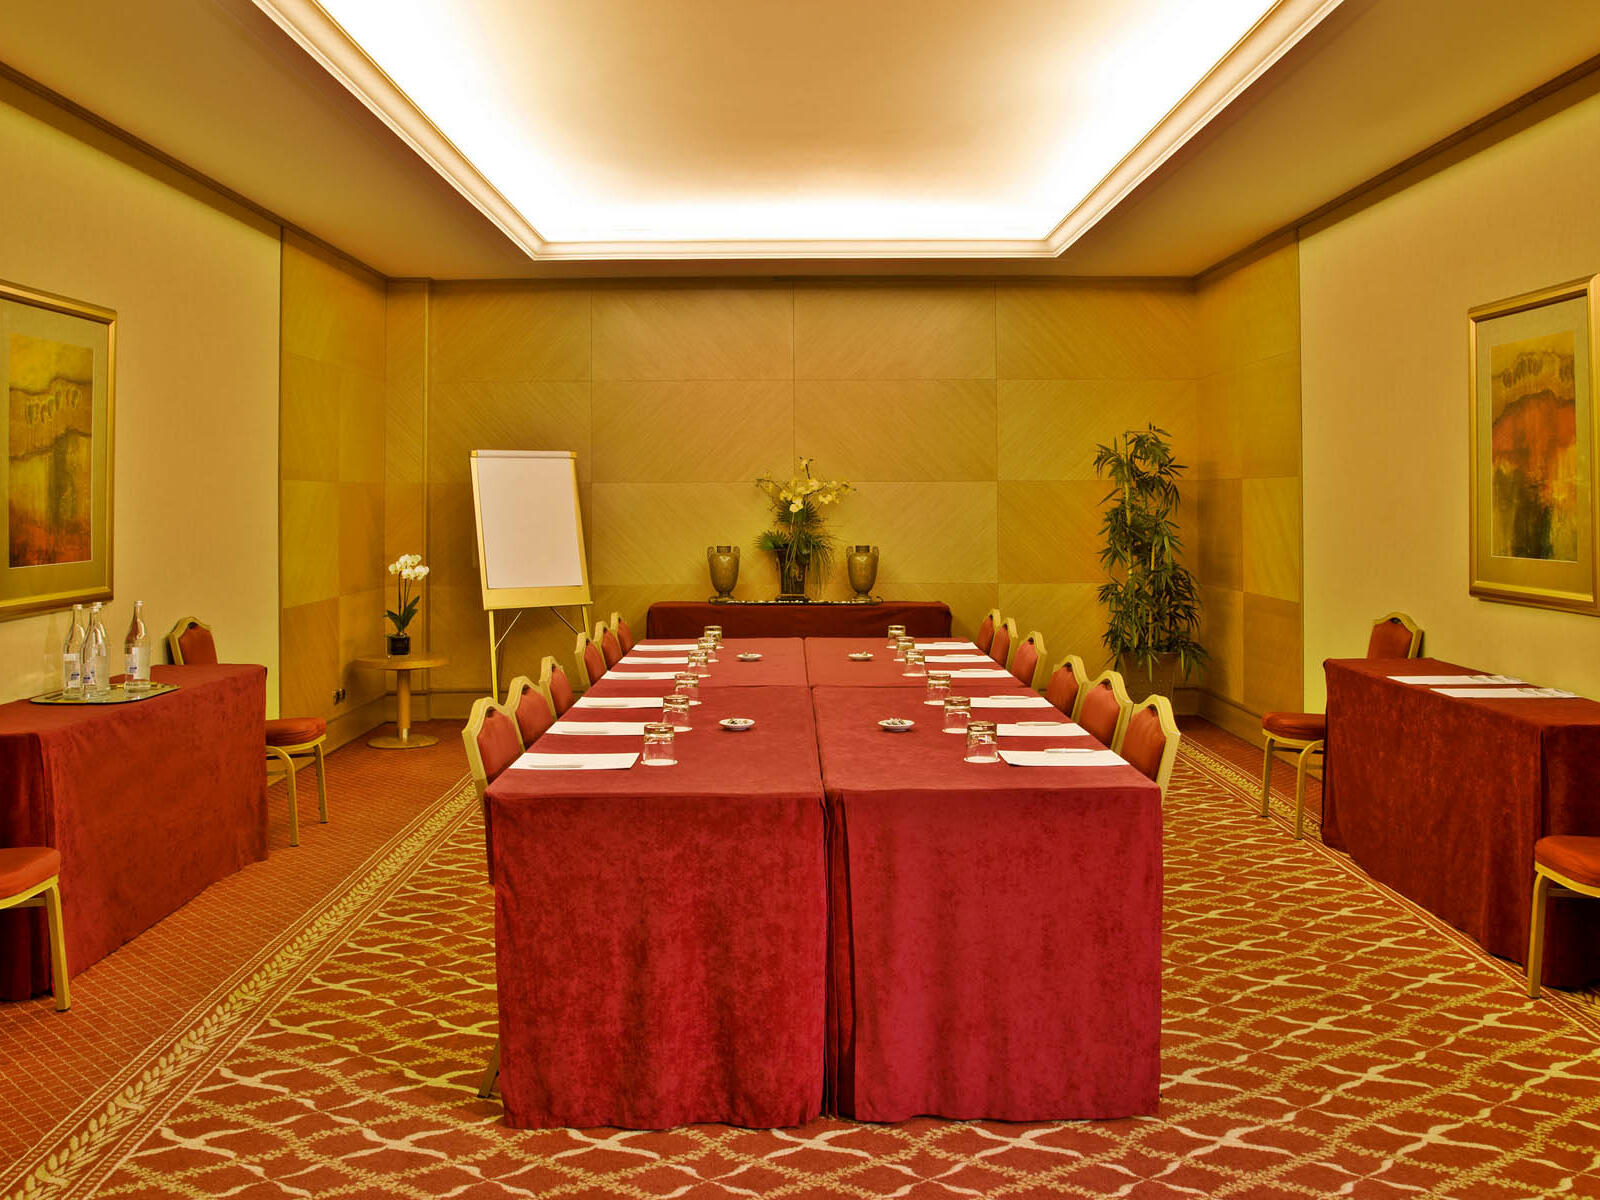 Meeting Room with a centralized table at Hotel Cascais Miragem